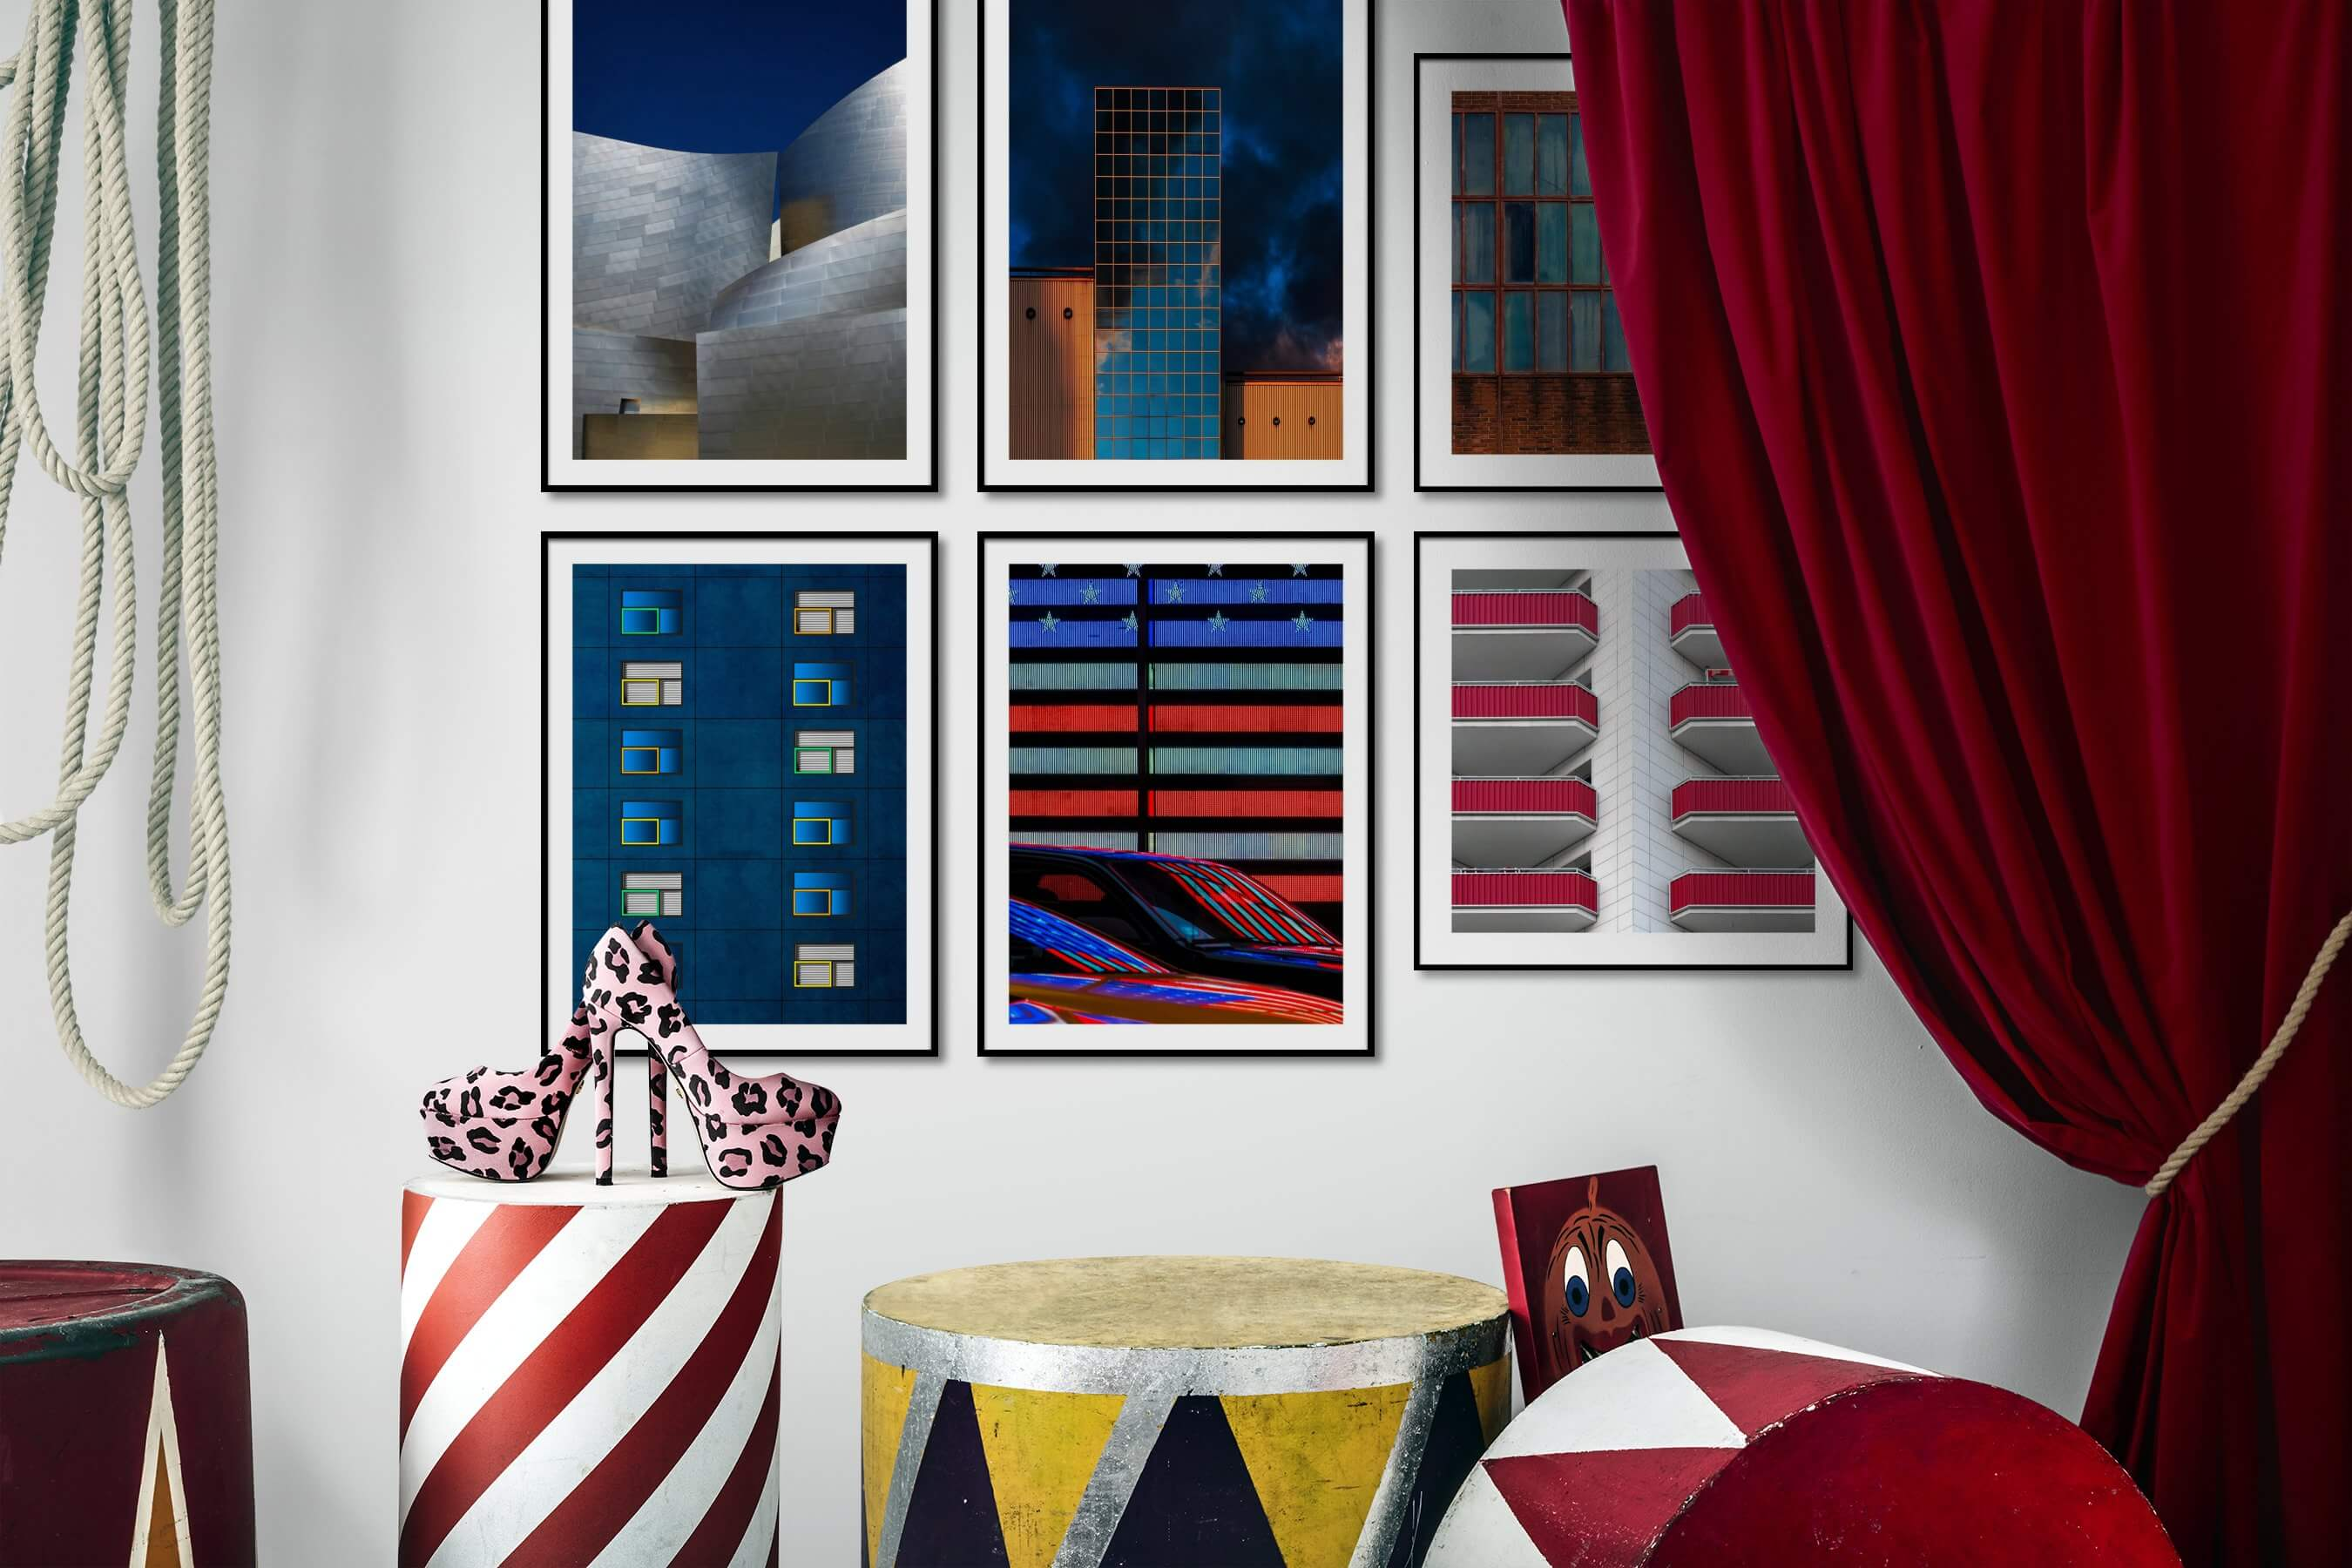 Gallery wall idea with six framed pictures arranged on a wall depicting For the Minimalist, City Life, For the Moderate, For the Maximalist, and Americana